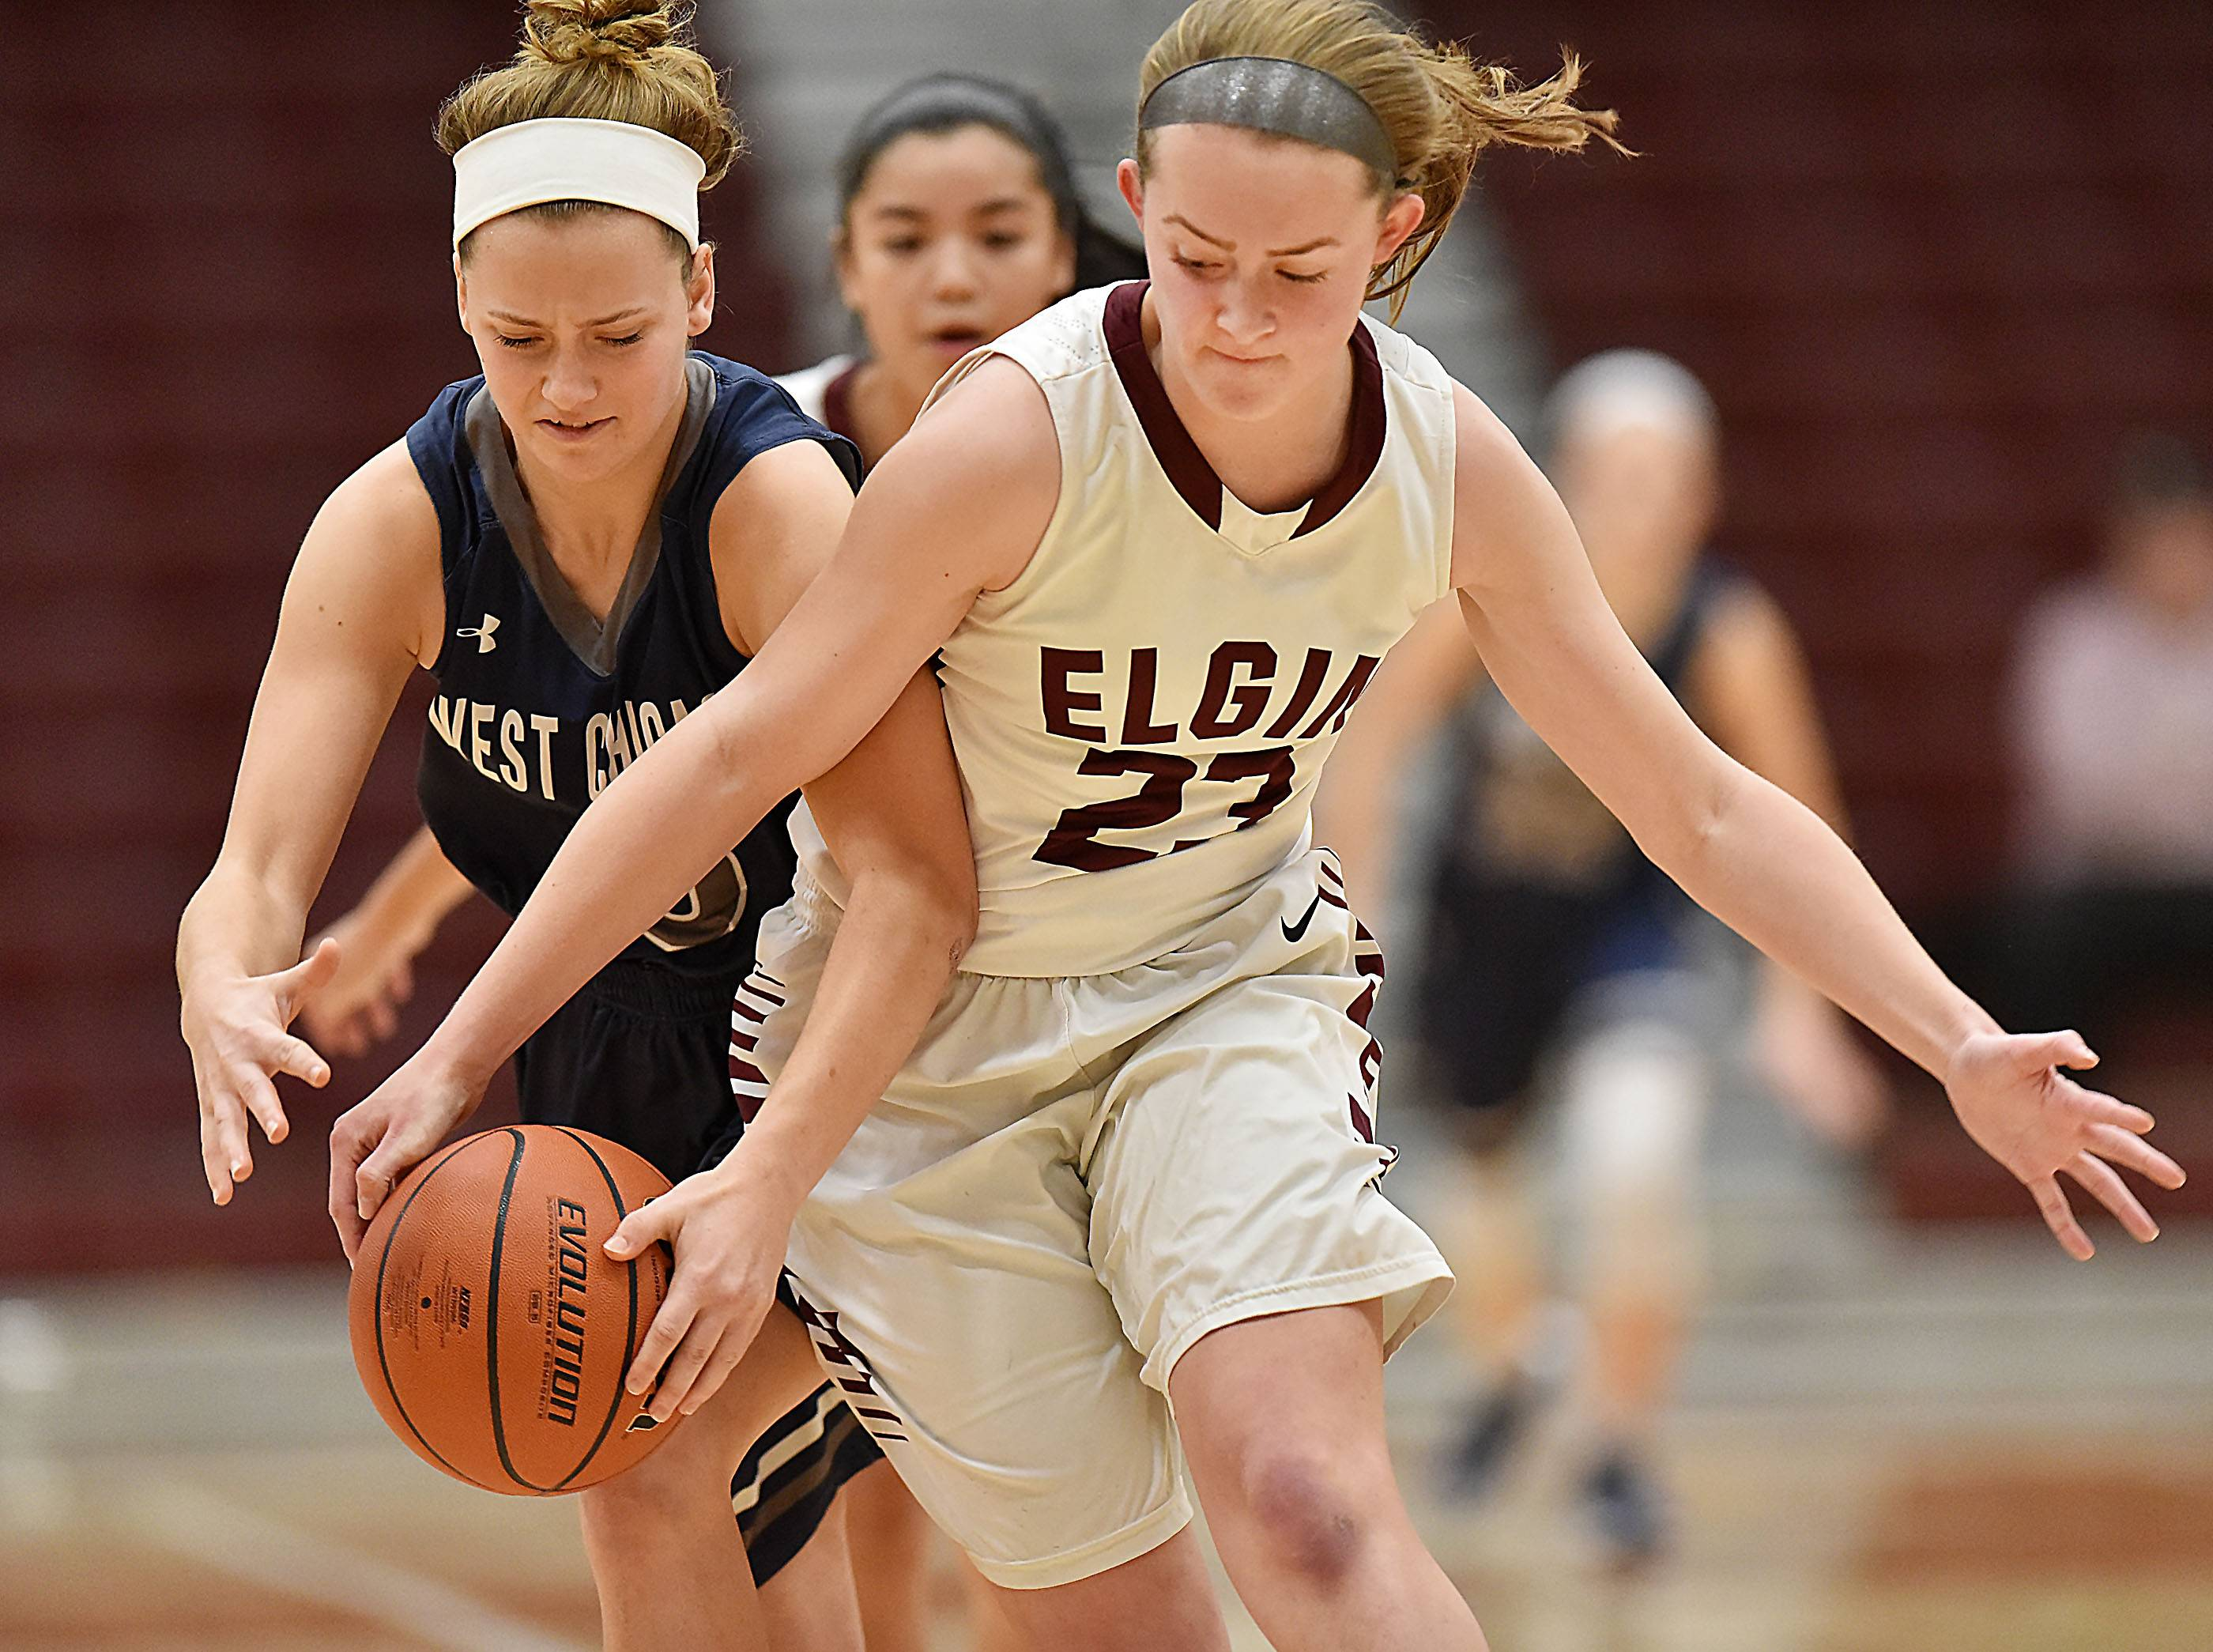 Elgin's Kylie Graves tries to take the ball from West Chicago's Sofia Radice Tuesday at Chesbrough Field House at Elgin High School.